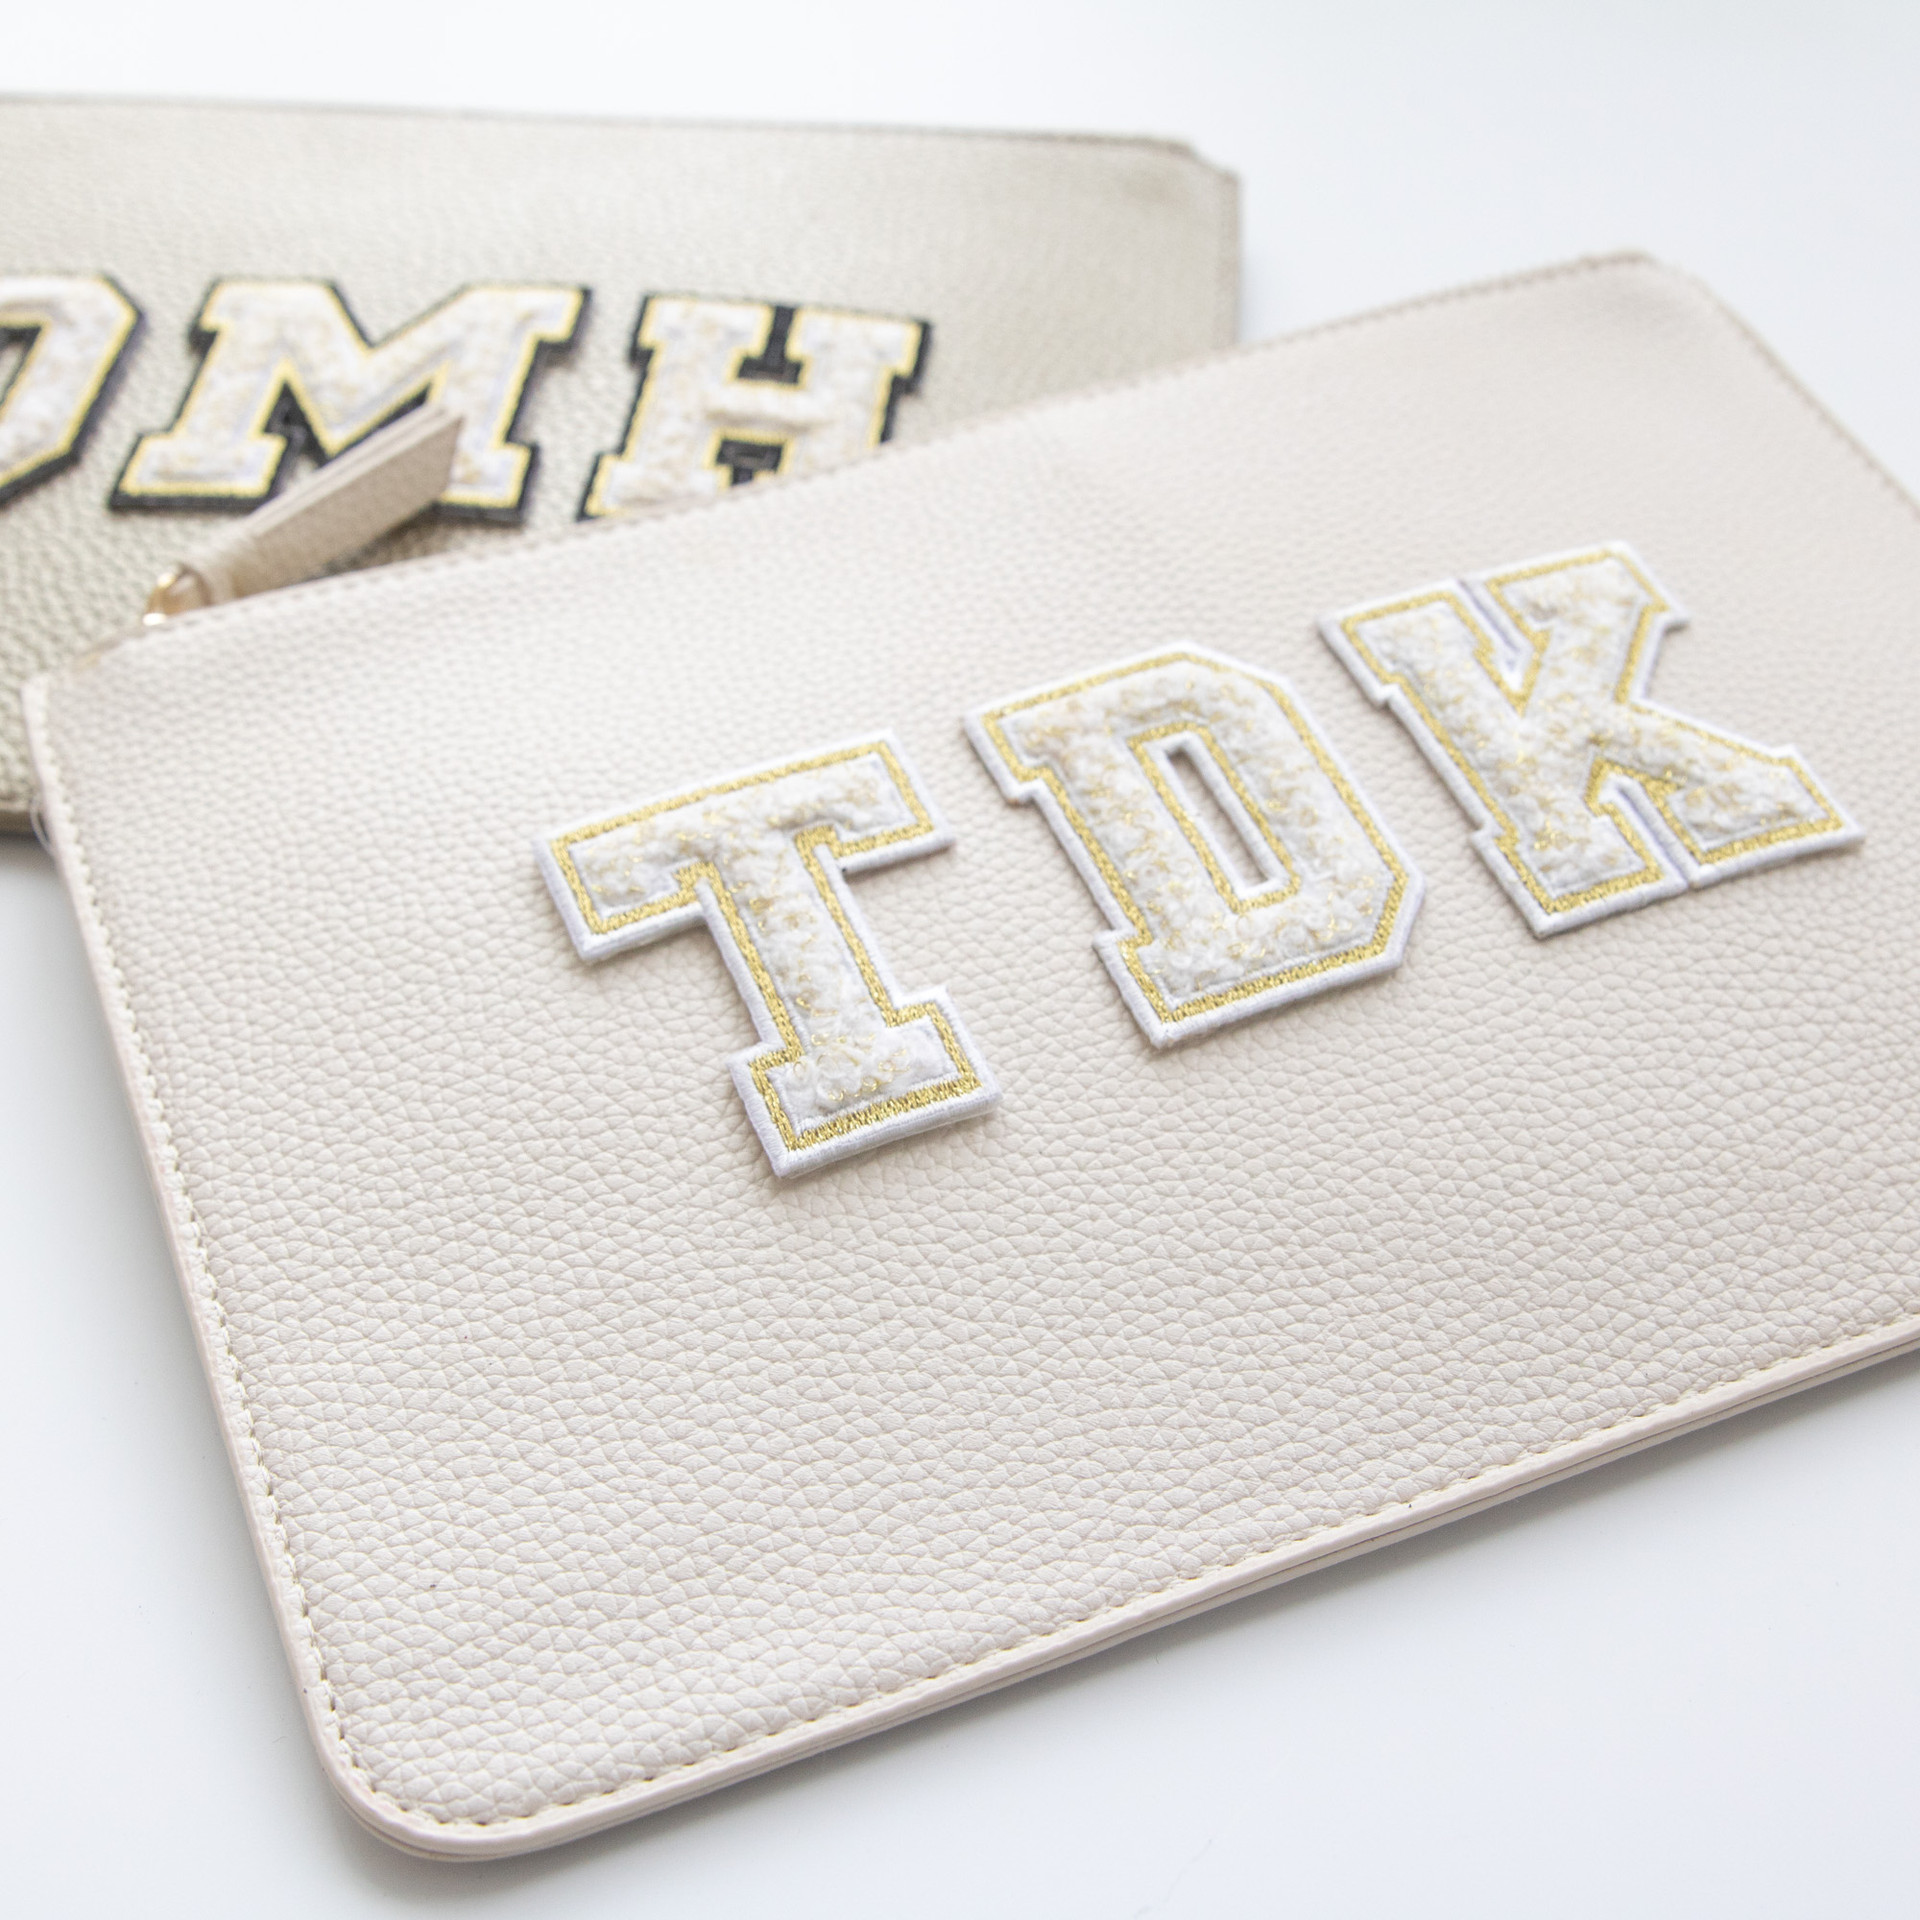 Vegan Leather Clutch + Chenille Letter Patches